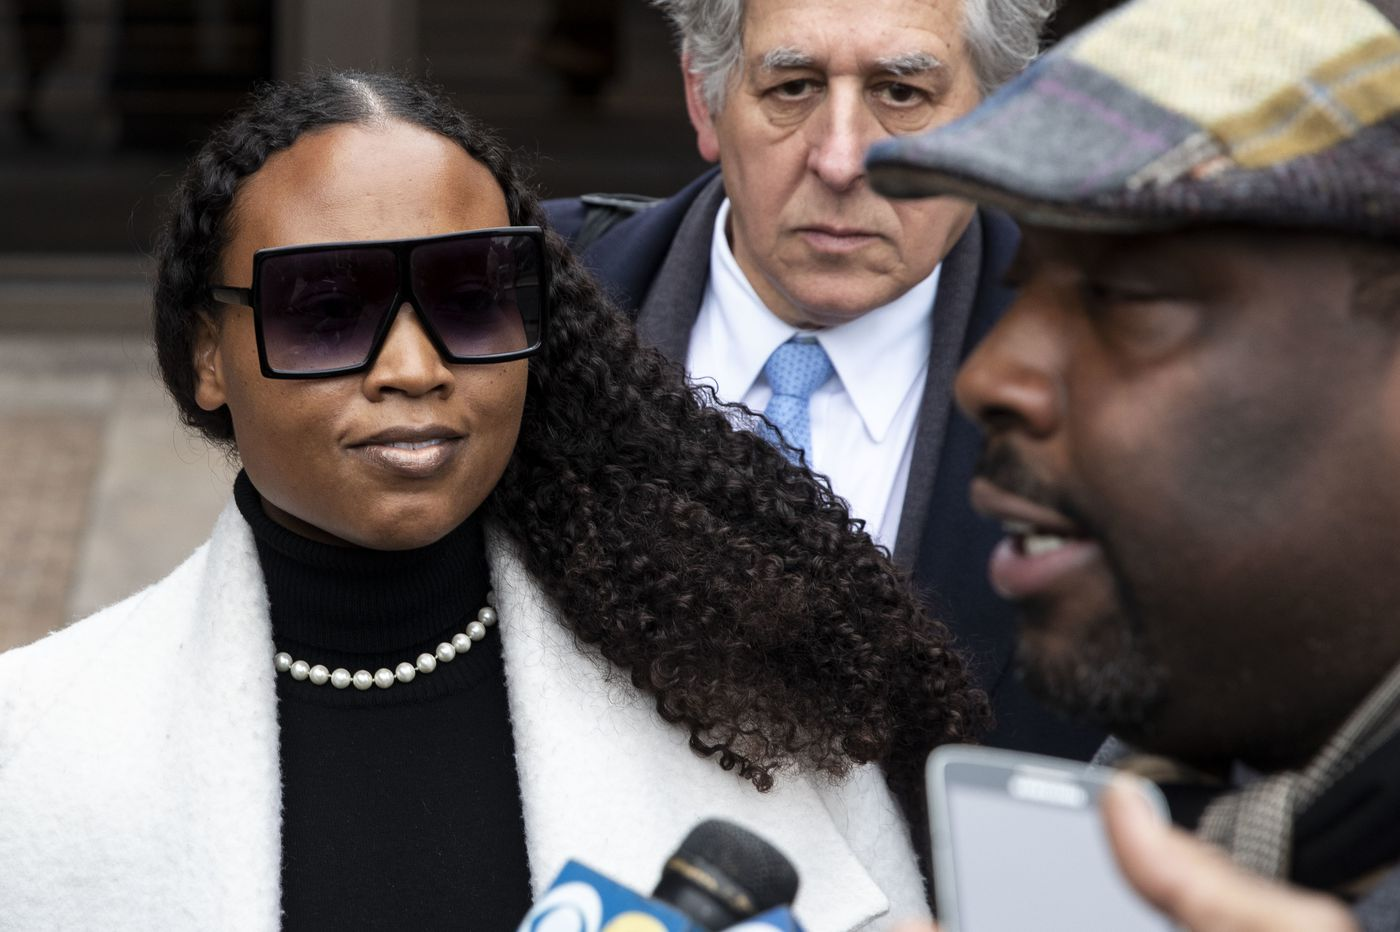 Philly Councilman Kenyatta Johnson and his wife have asked the court to throw out the federal corruption case against them